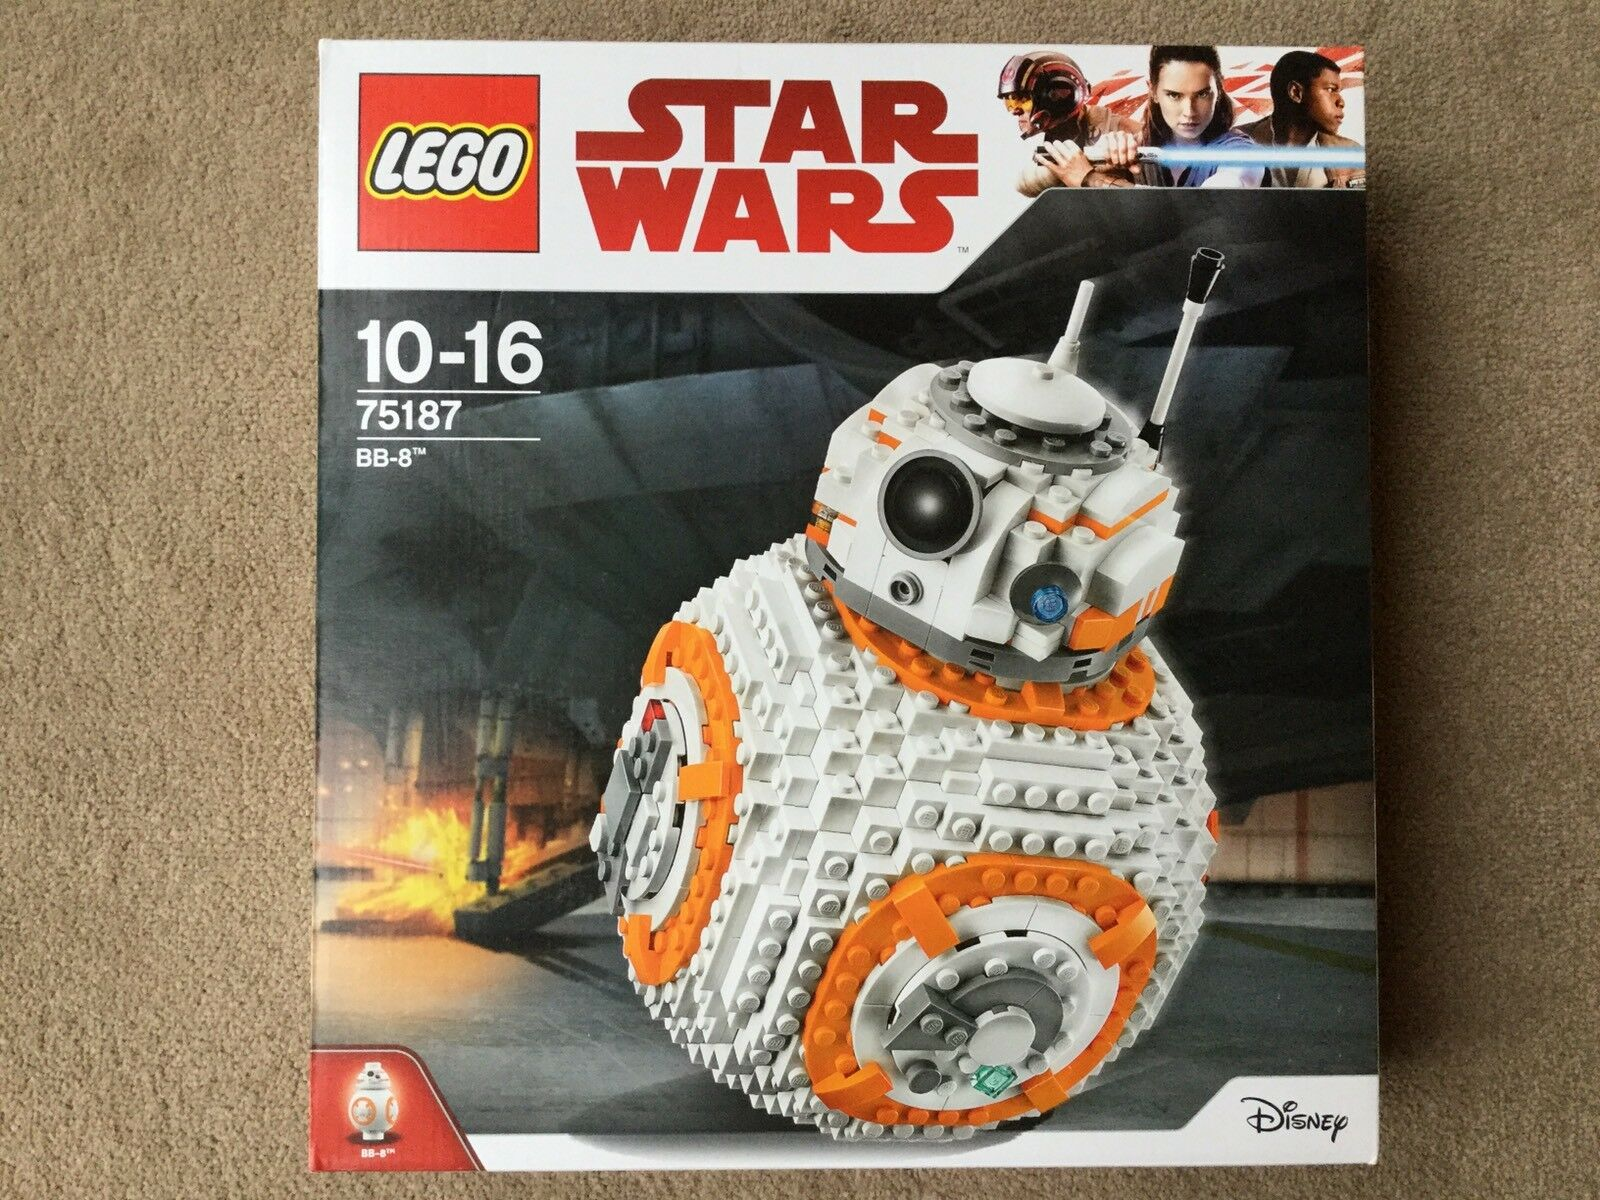 Lego Star Wars 75187 BB-8 - NEW & SEALED